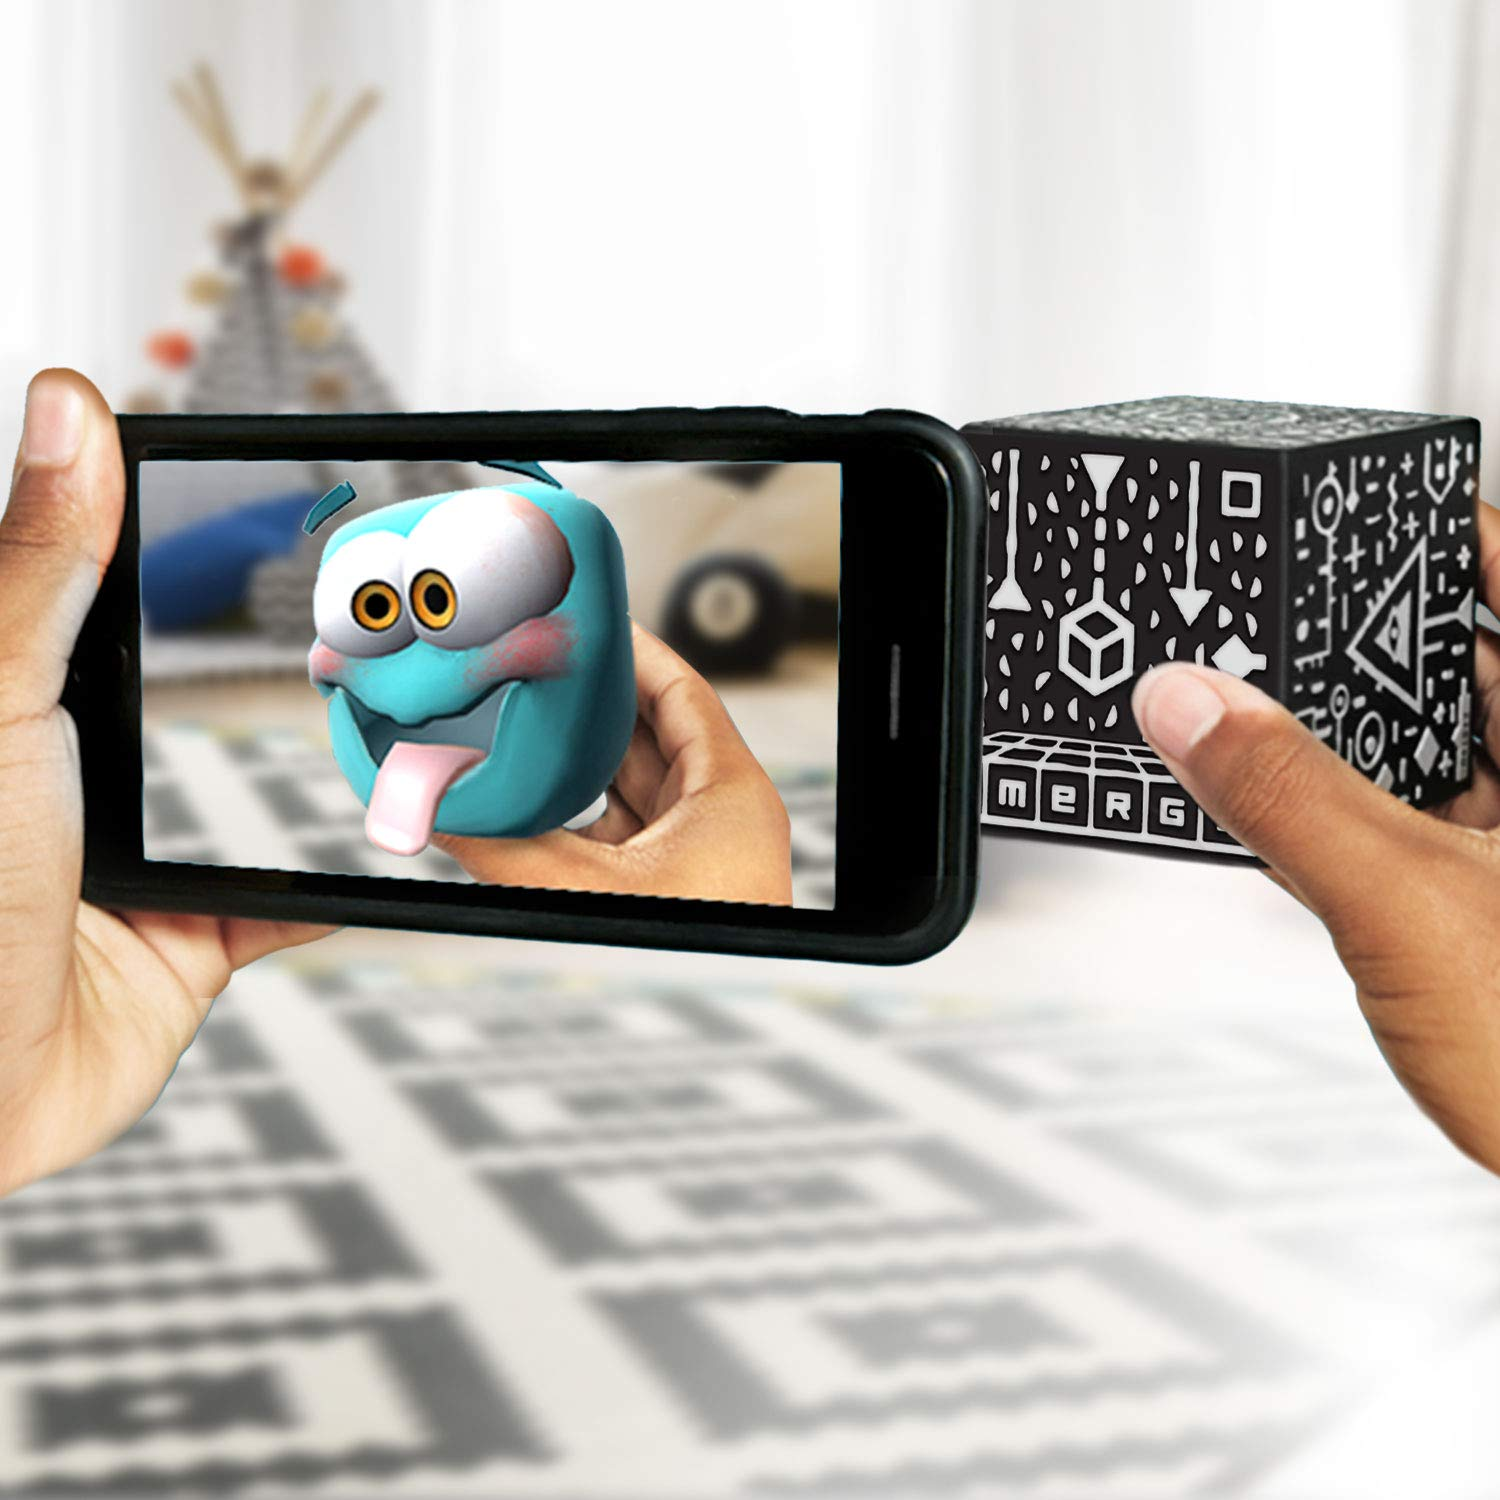 MERGE Cube - Fun & Educational Augmented Reality STEM Product, Learn Science, Math, and More (1 Pack)